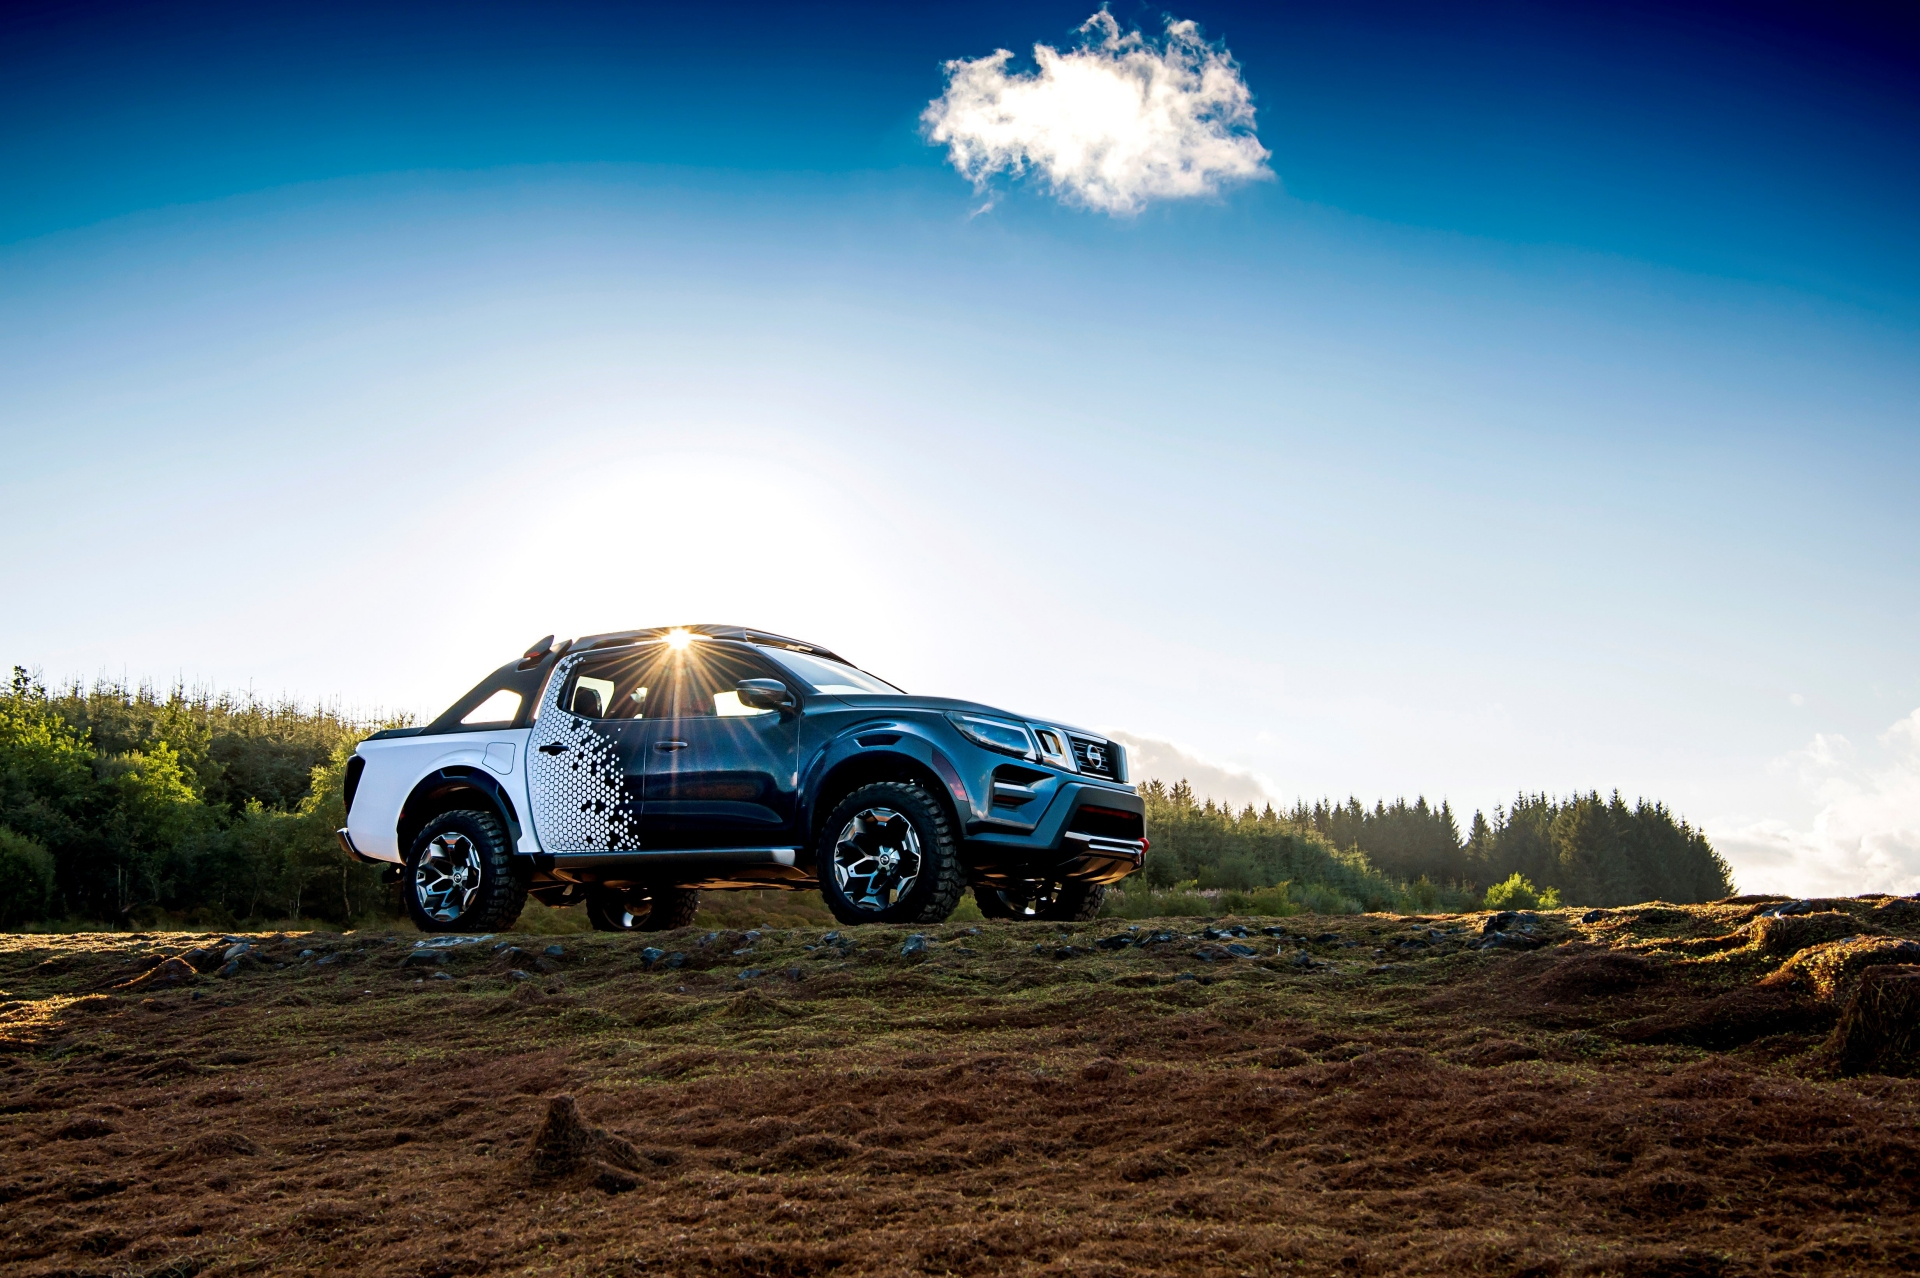 2019 Nissan Navara Dark Sky Concept: Reach for the Stars ...